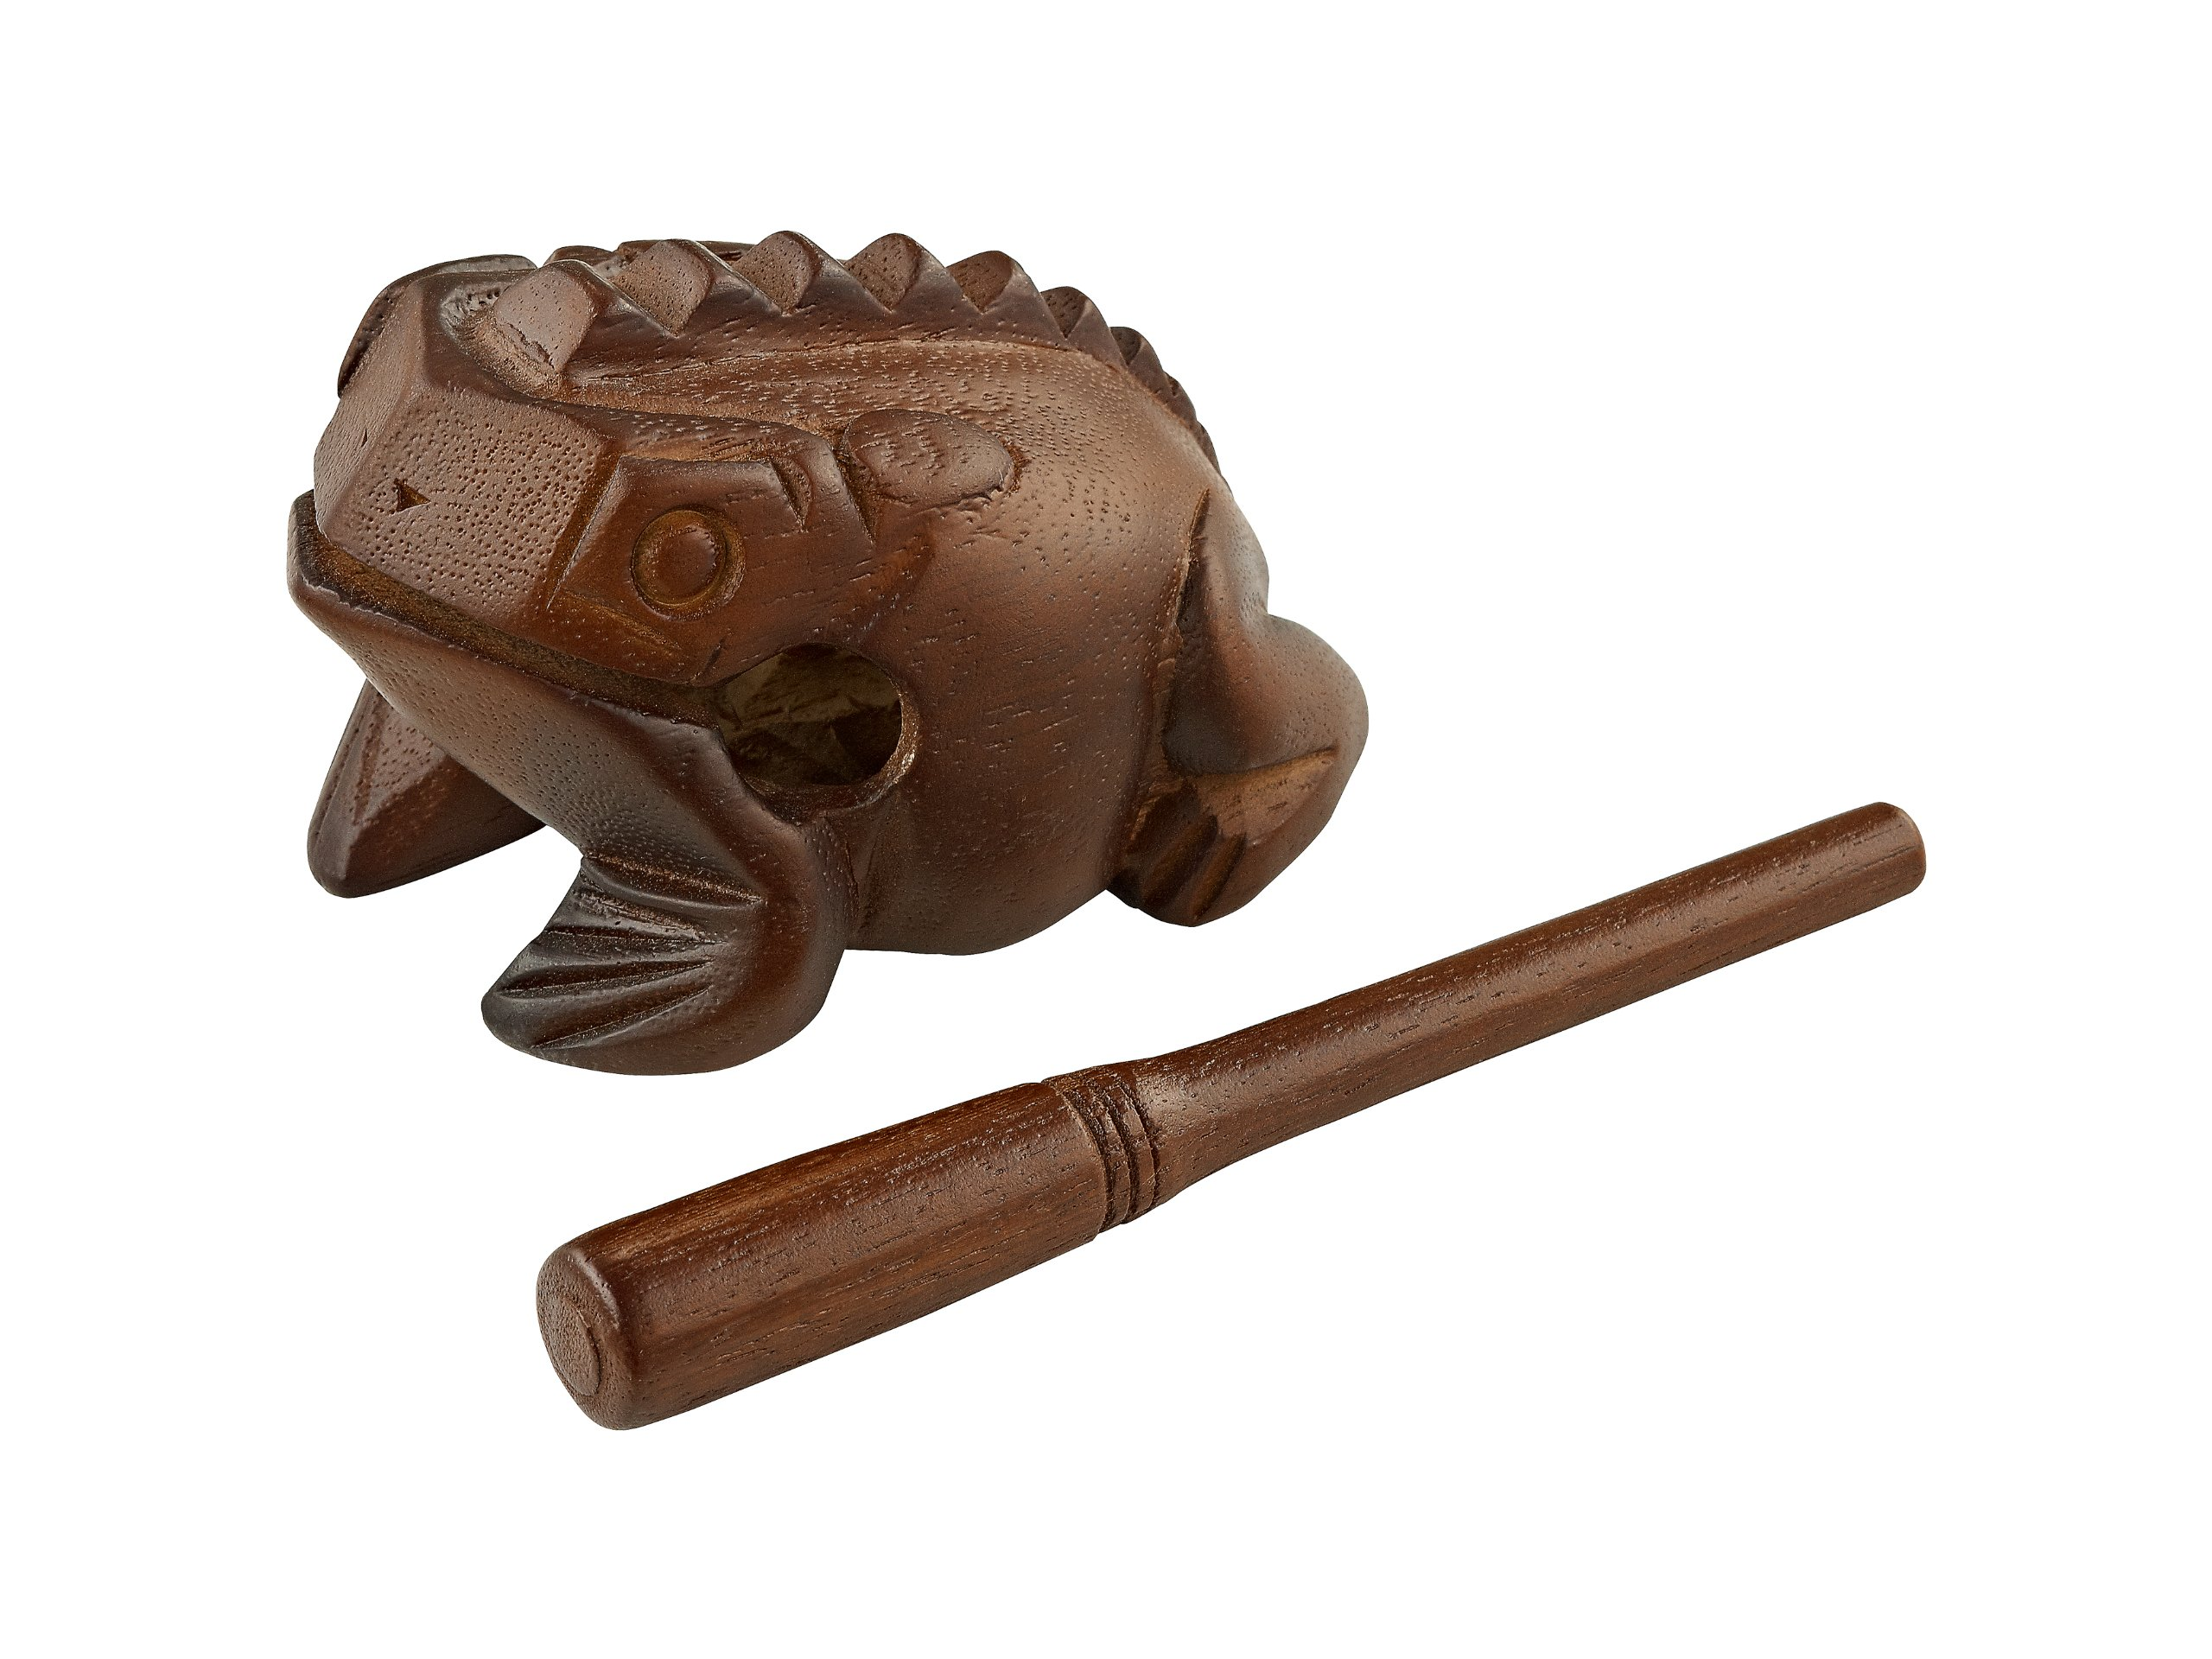 Meinl Percussion FROG-M Medium Wooden Frog Guiro, African Brown